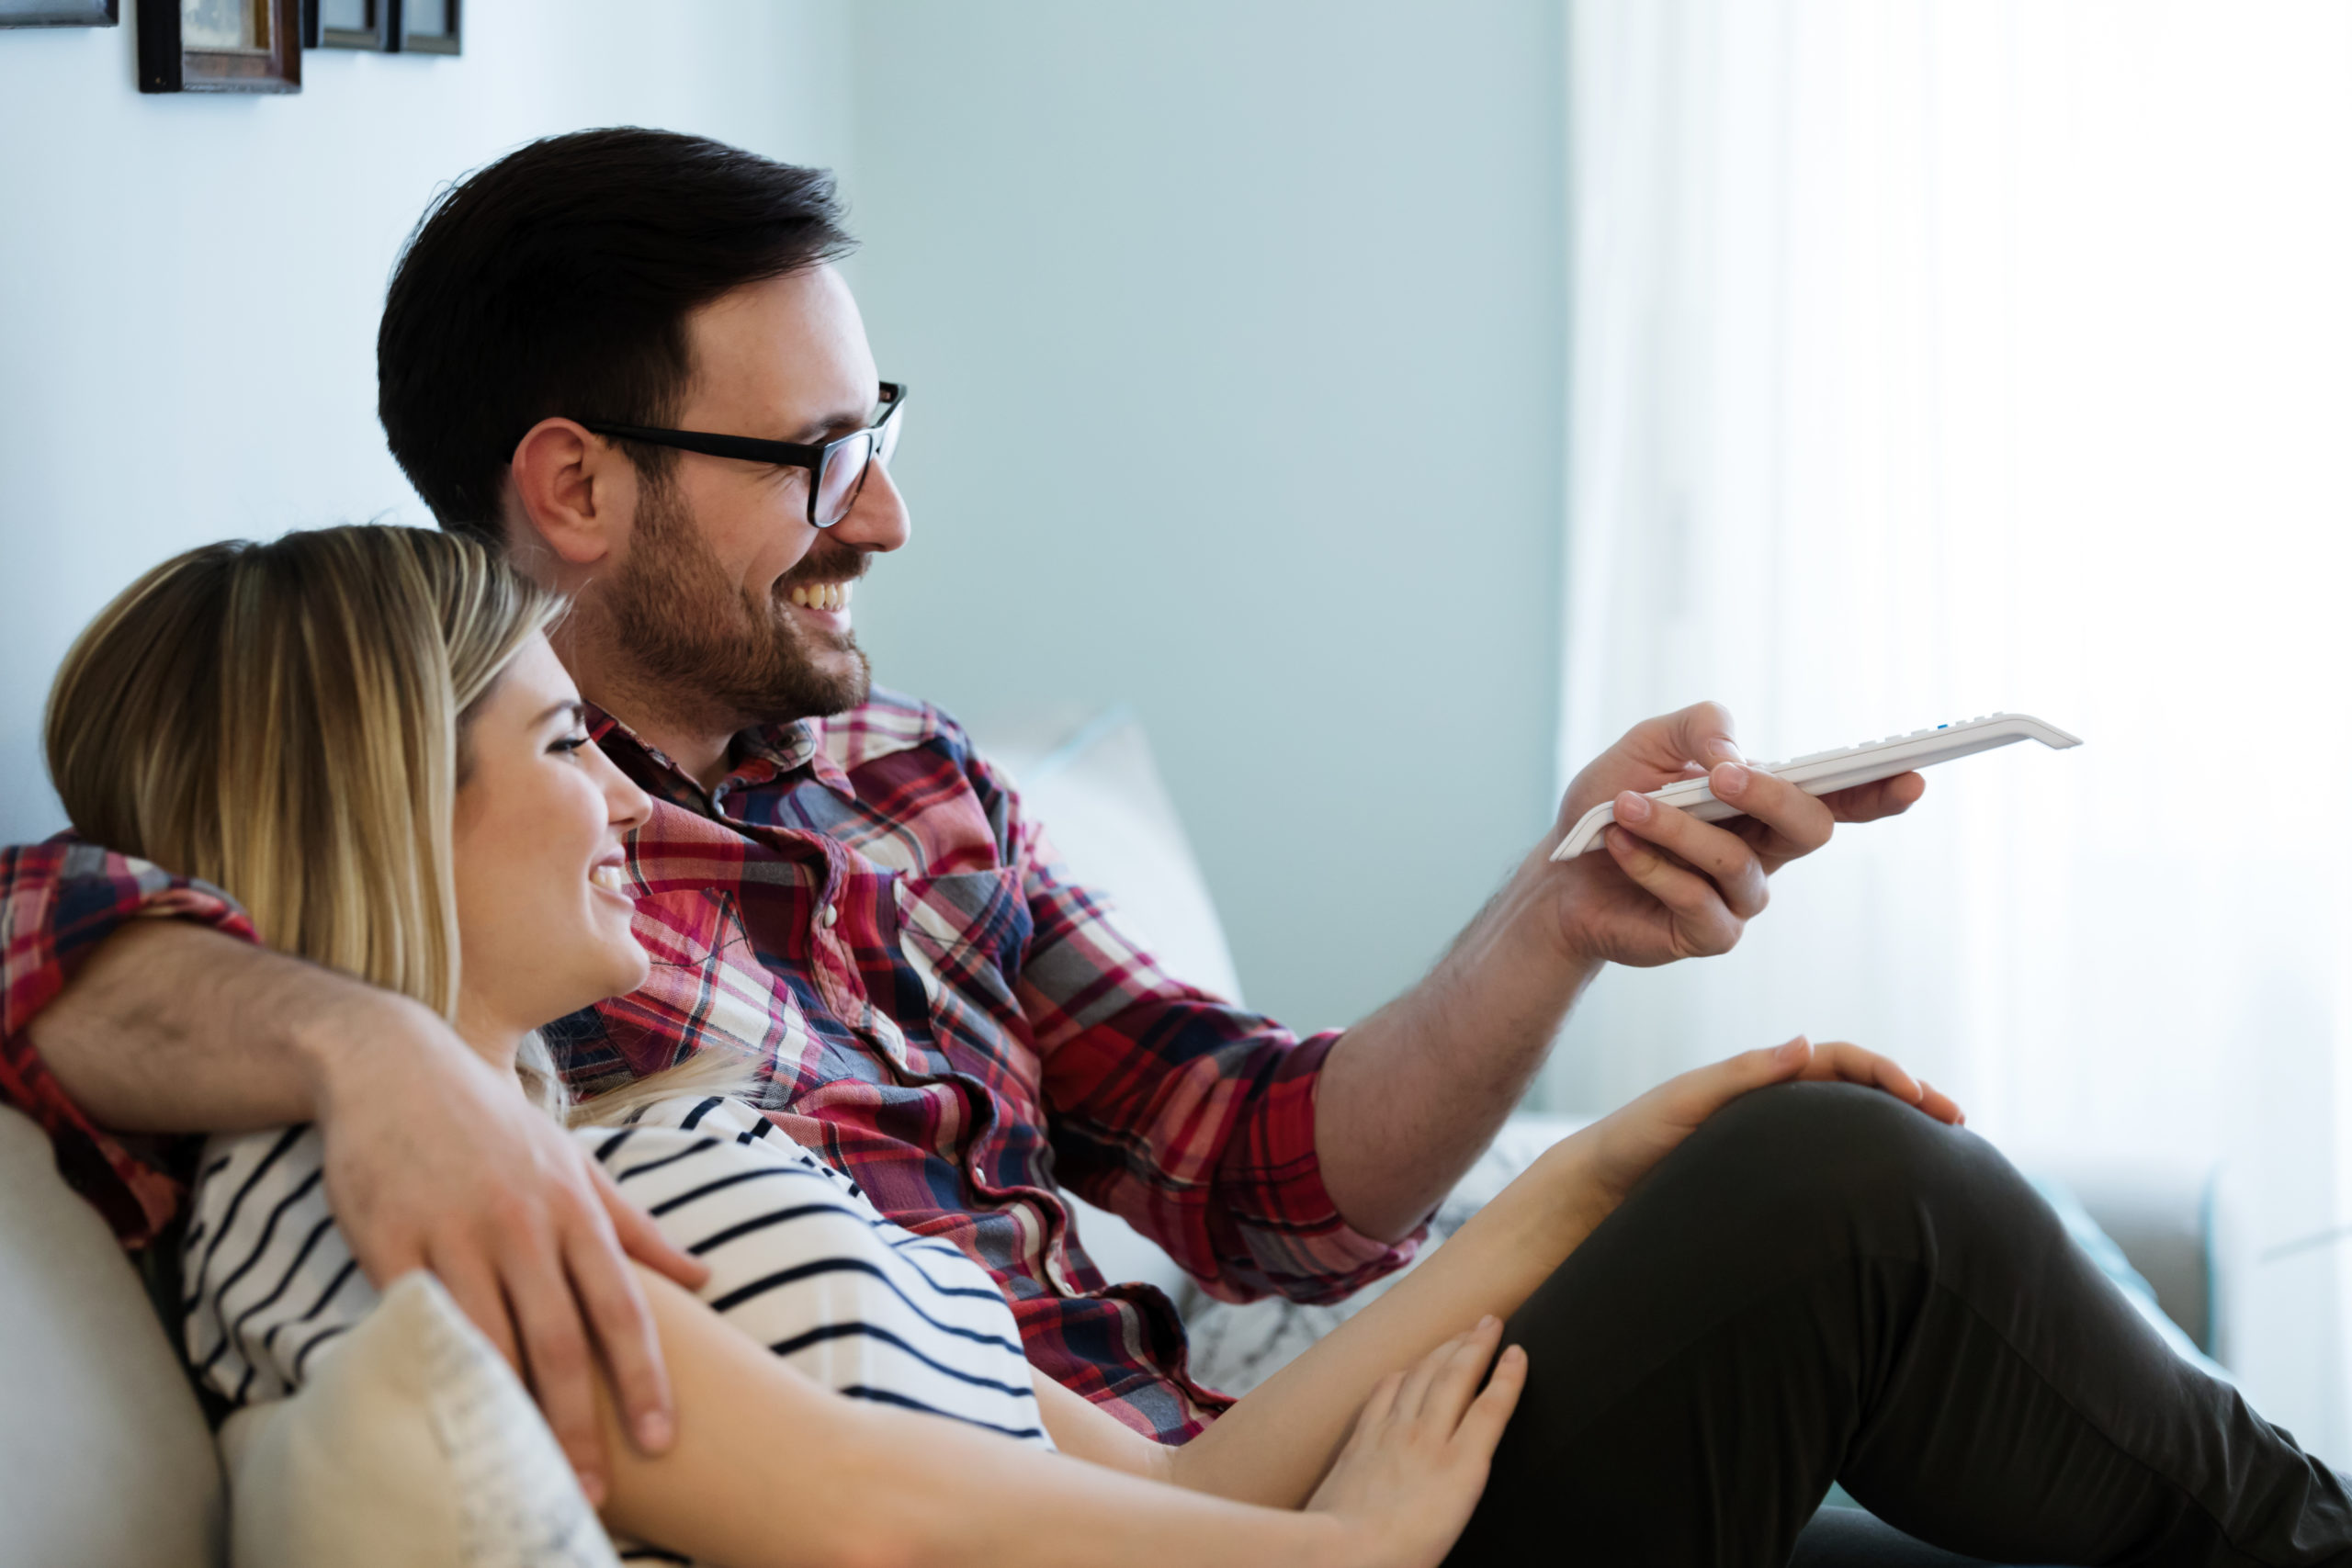 https://elements.envato.com/romantic-couple-watching-tv-at-home-RYD6AS4